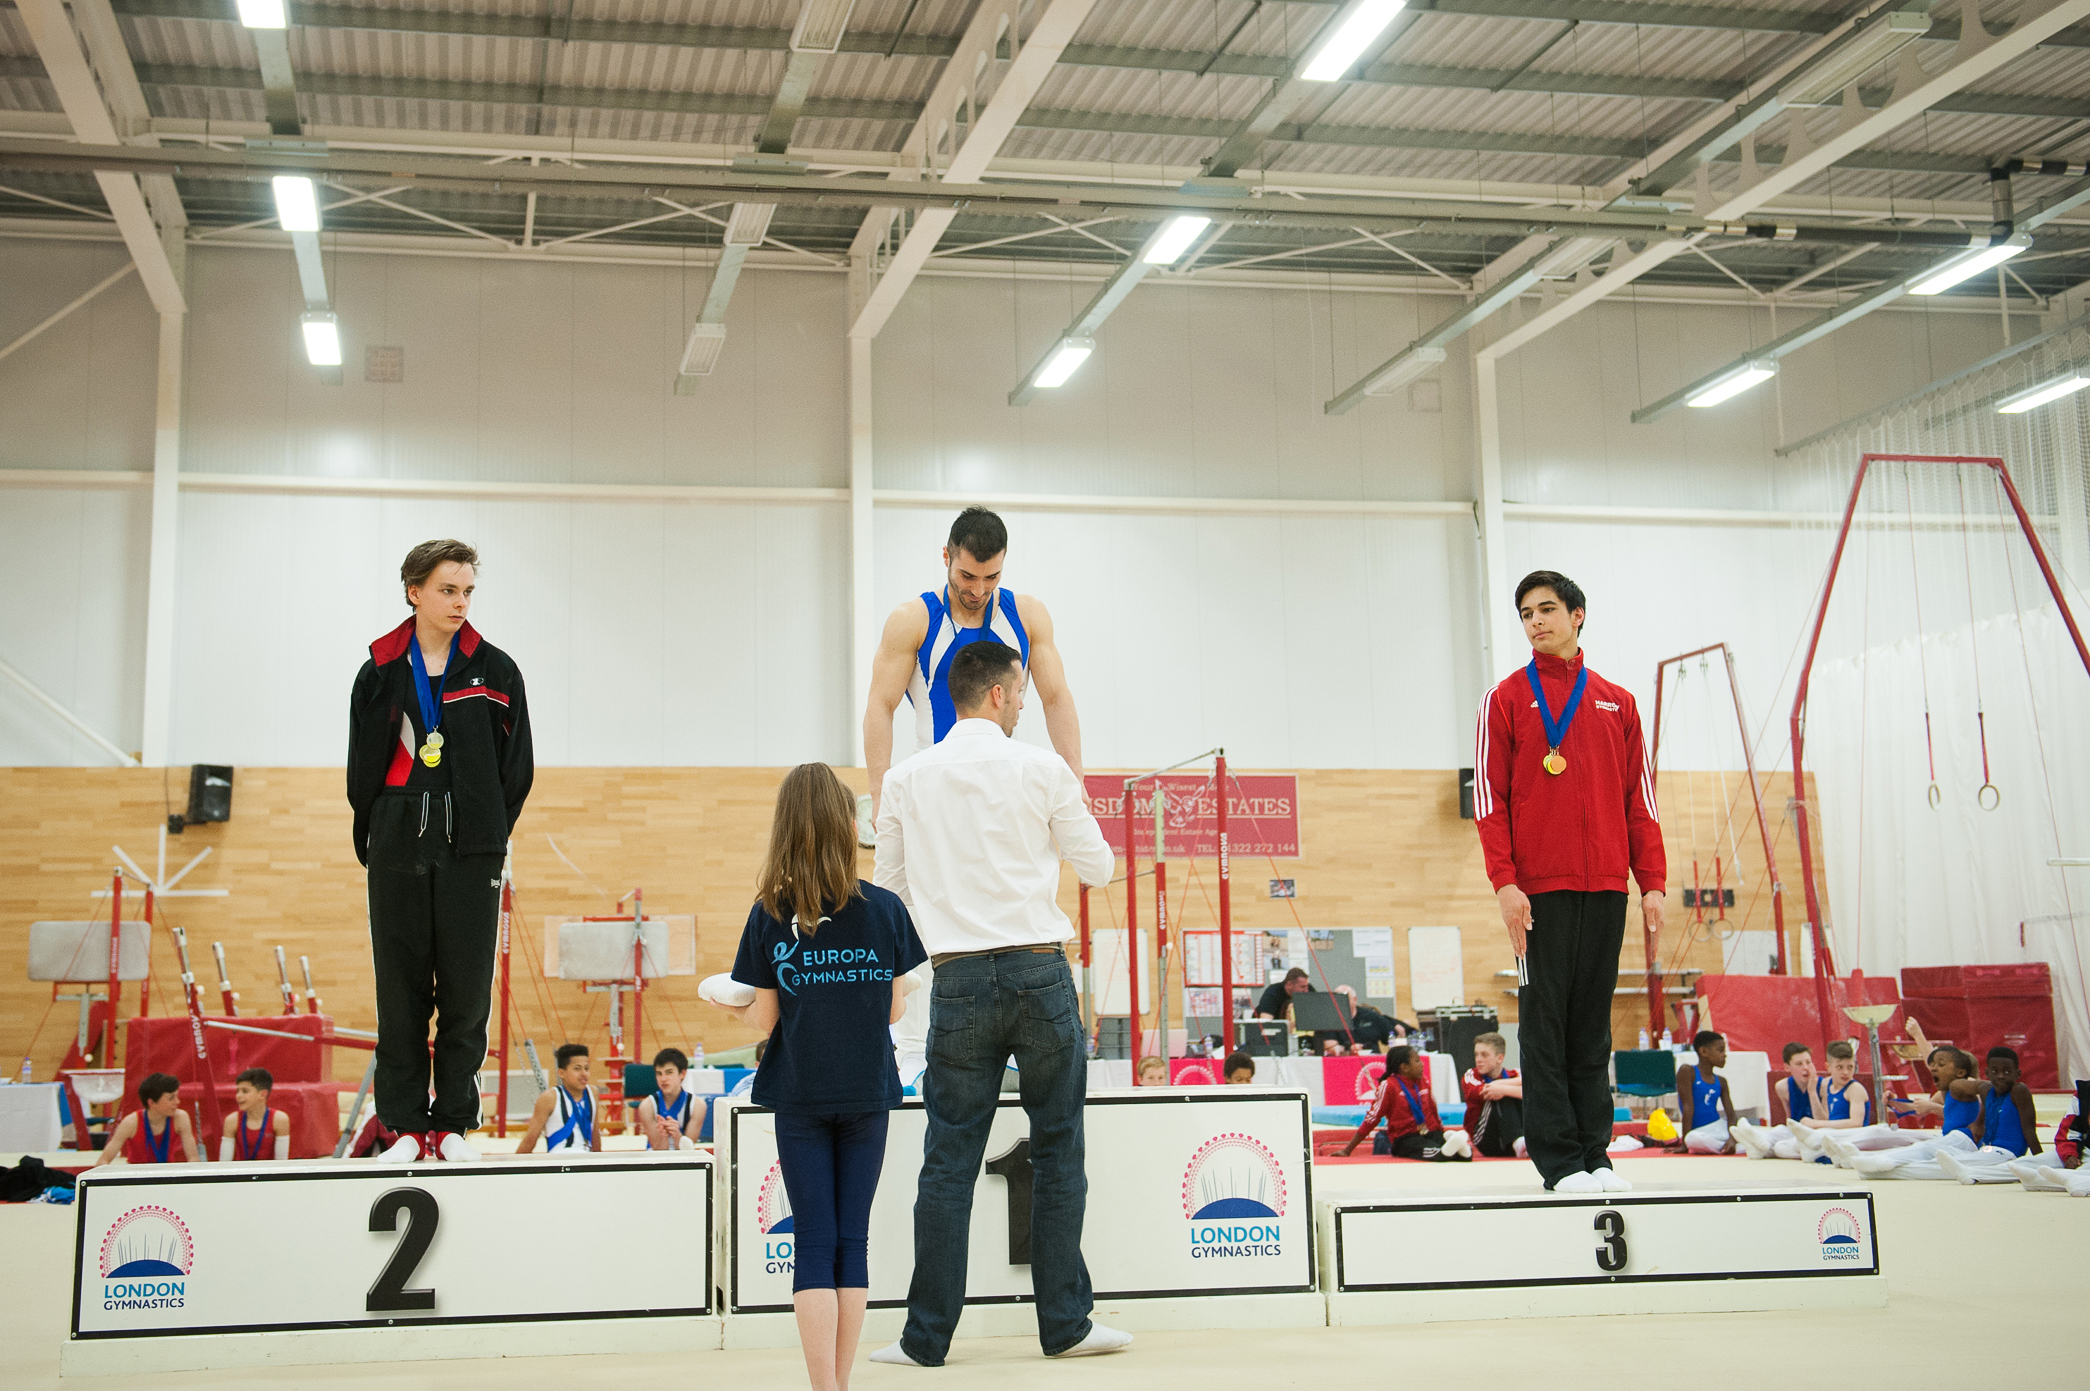 Winning a Gold medal - London Gymnastics